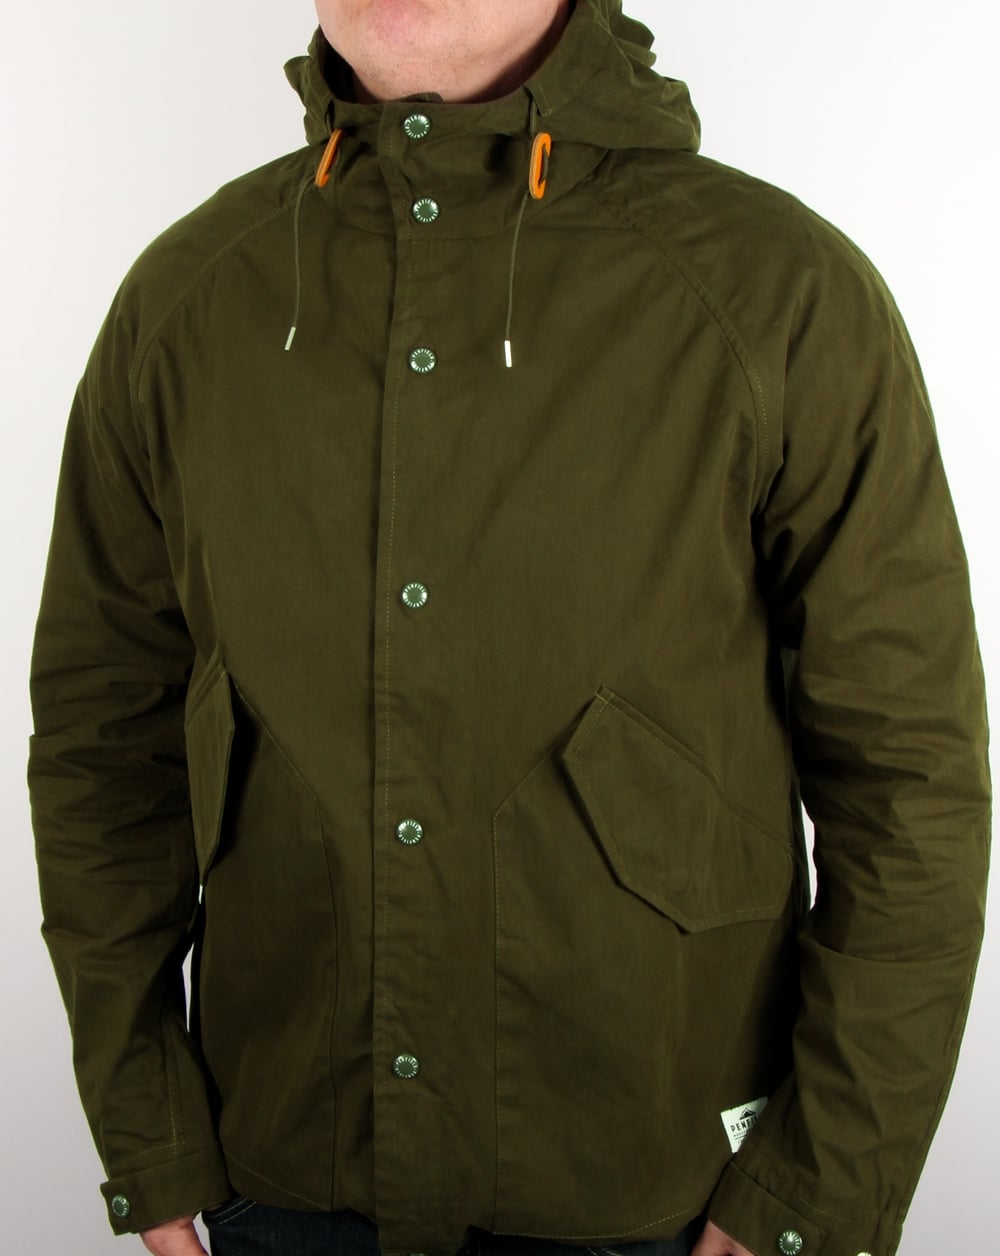 penfield jackets penfield davenport jacket olive ... pquzcxc